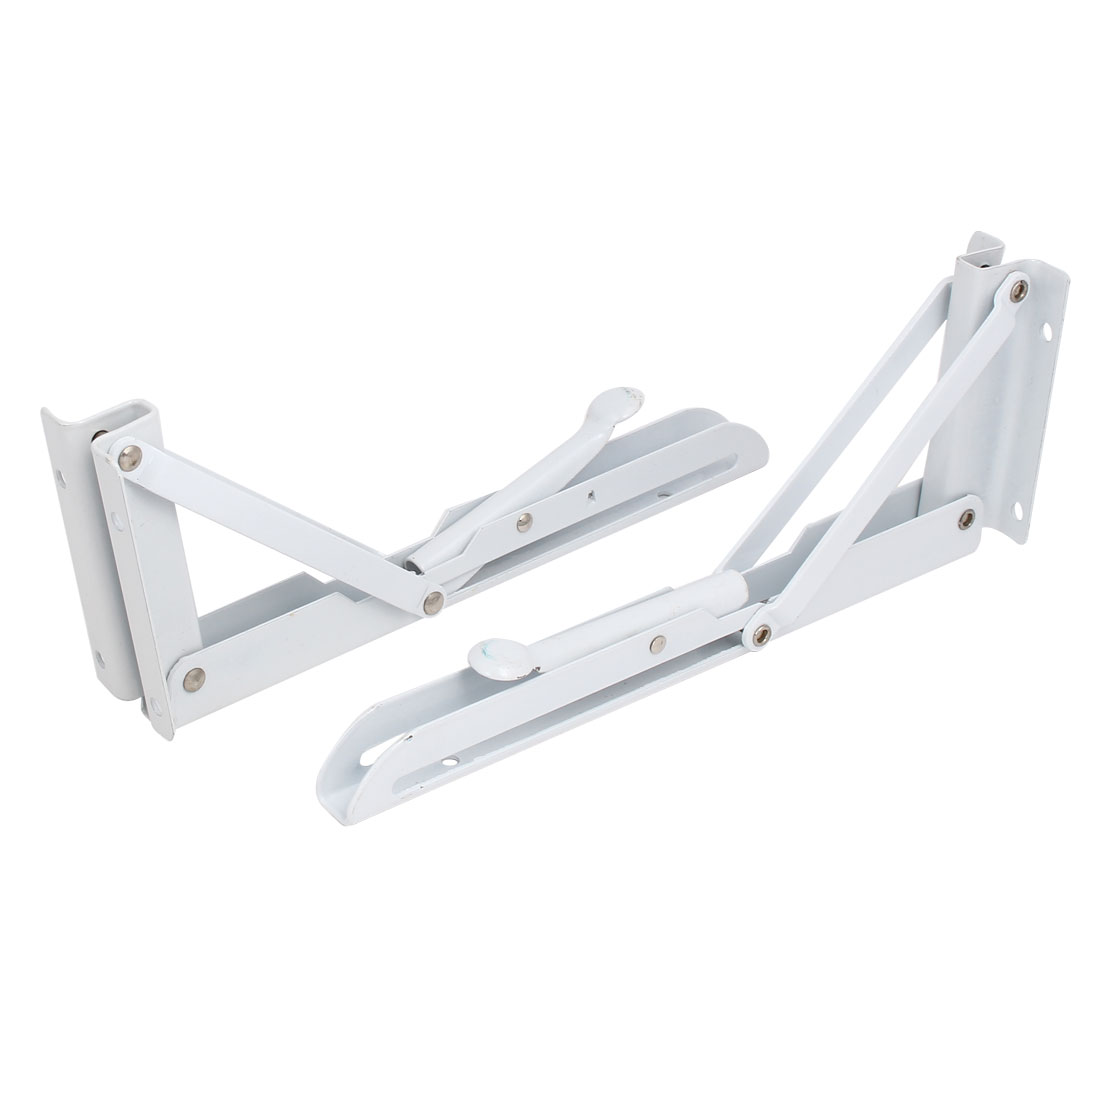 10'' Length Wall Mounted Spring Loaded Folding Shelf Support Bracket Brace 2pcs